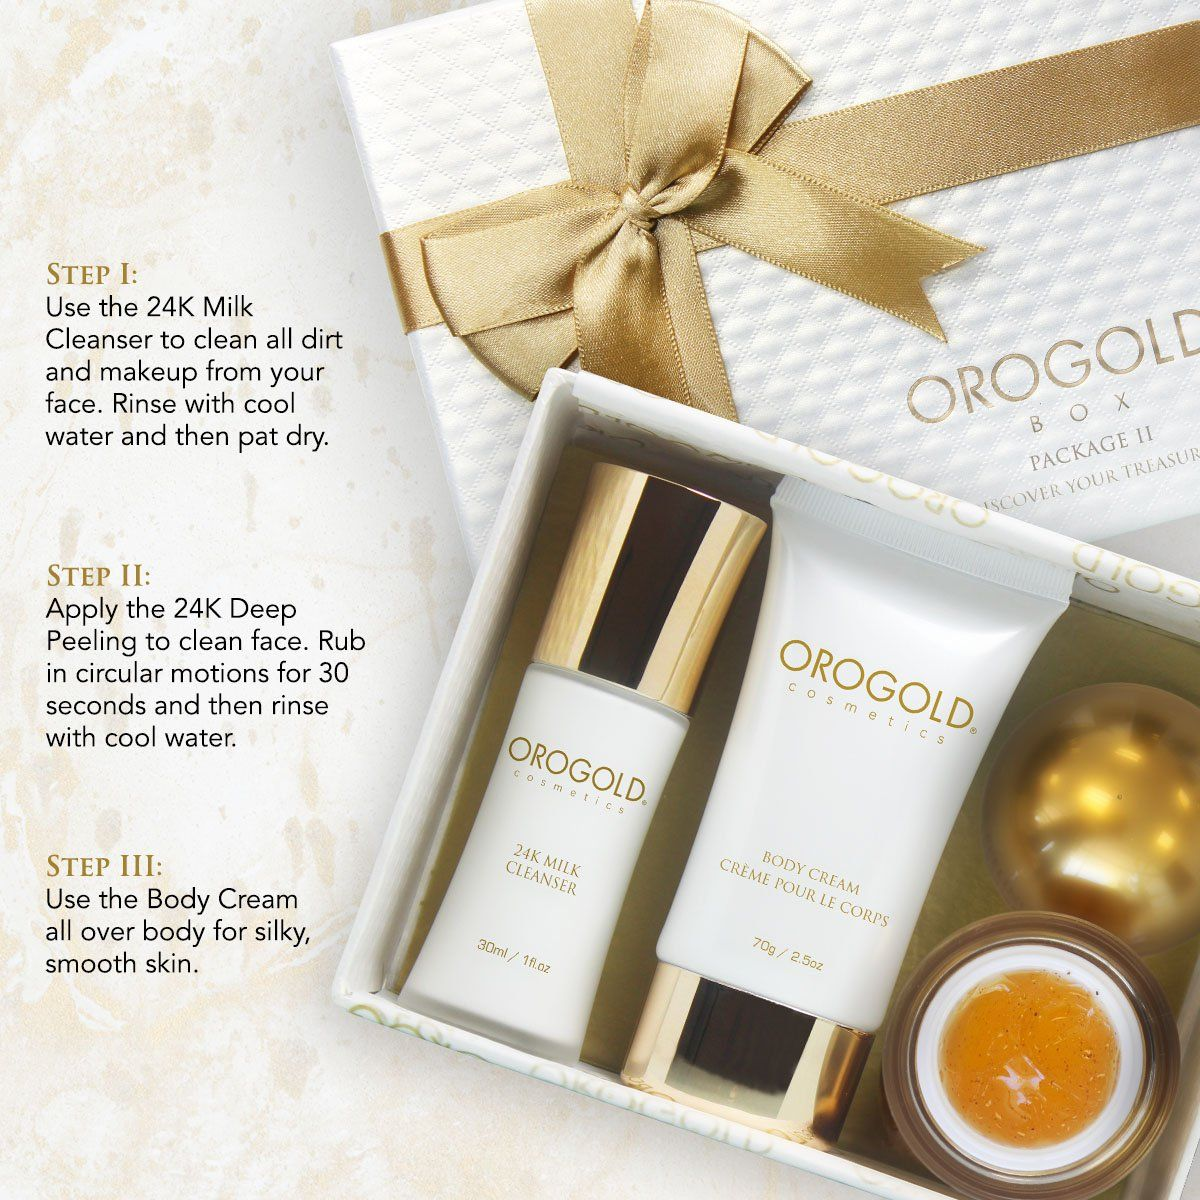 Orogold 24k Gold Luxury Skincare Kit 2 Holiday Gift Set For Women Facial Care Set With Deep Peeling Gel Gold Facial Kit Orogold Cosmetics Gift Sets For Women